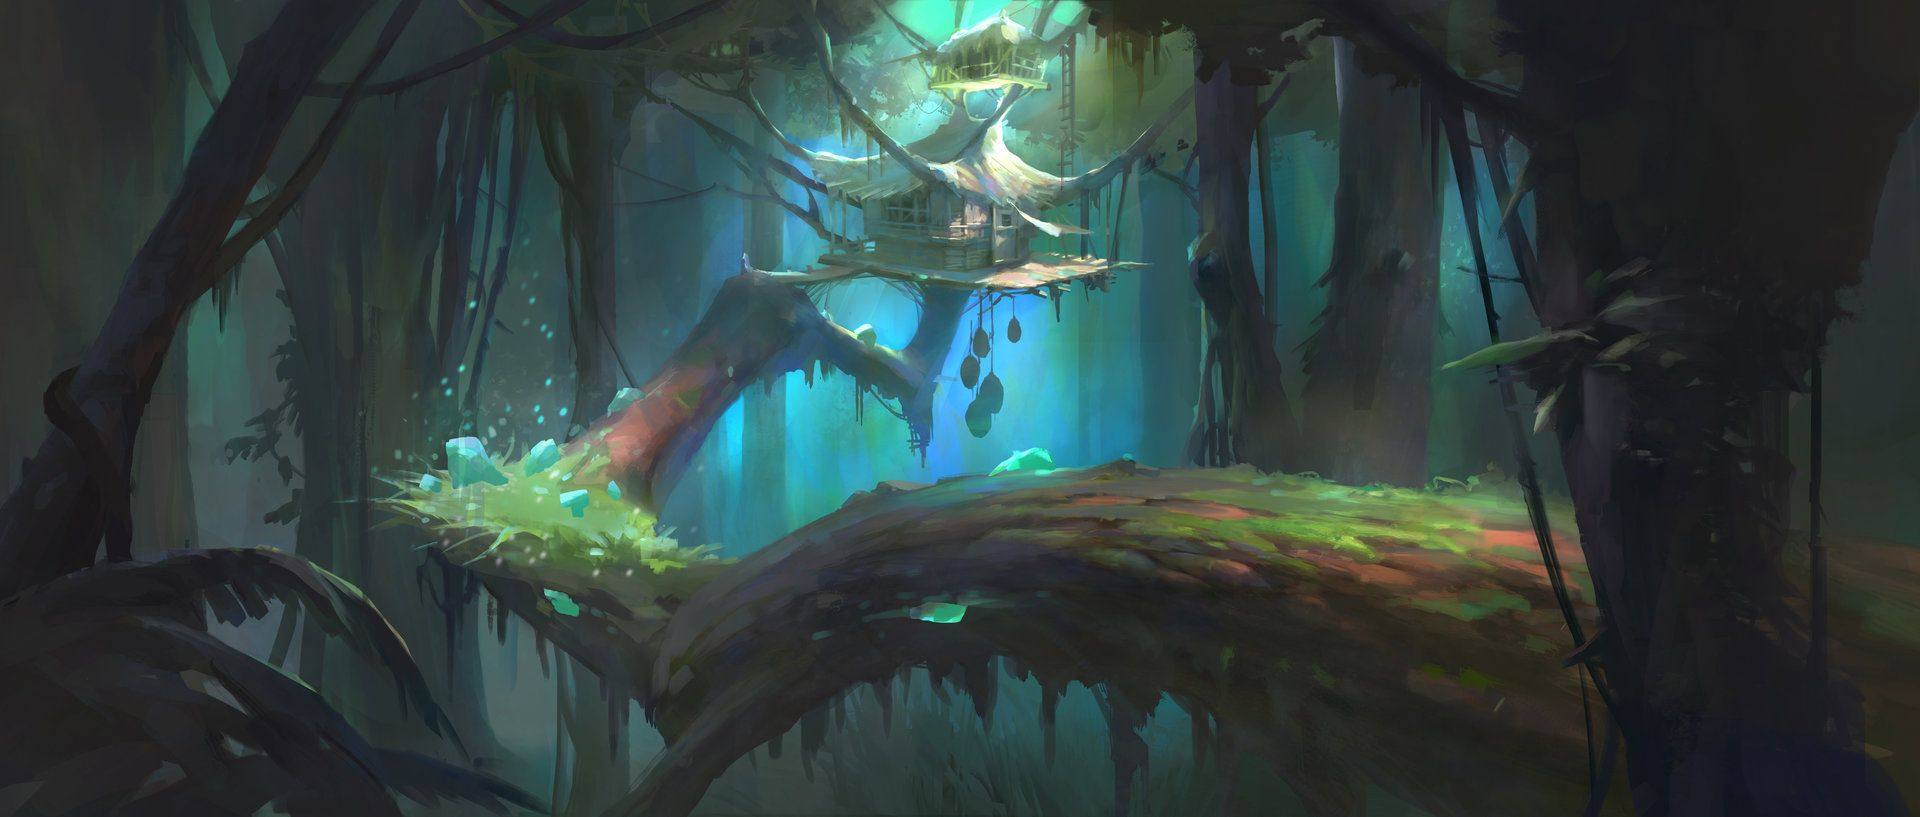 ArtStation - Forest of witch, you jeong Cho